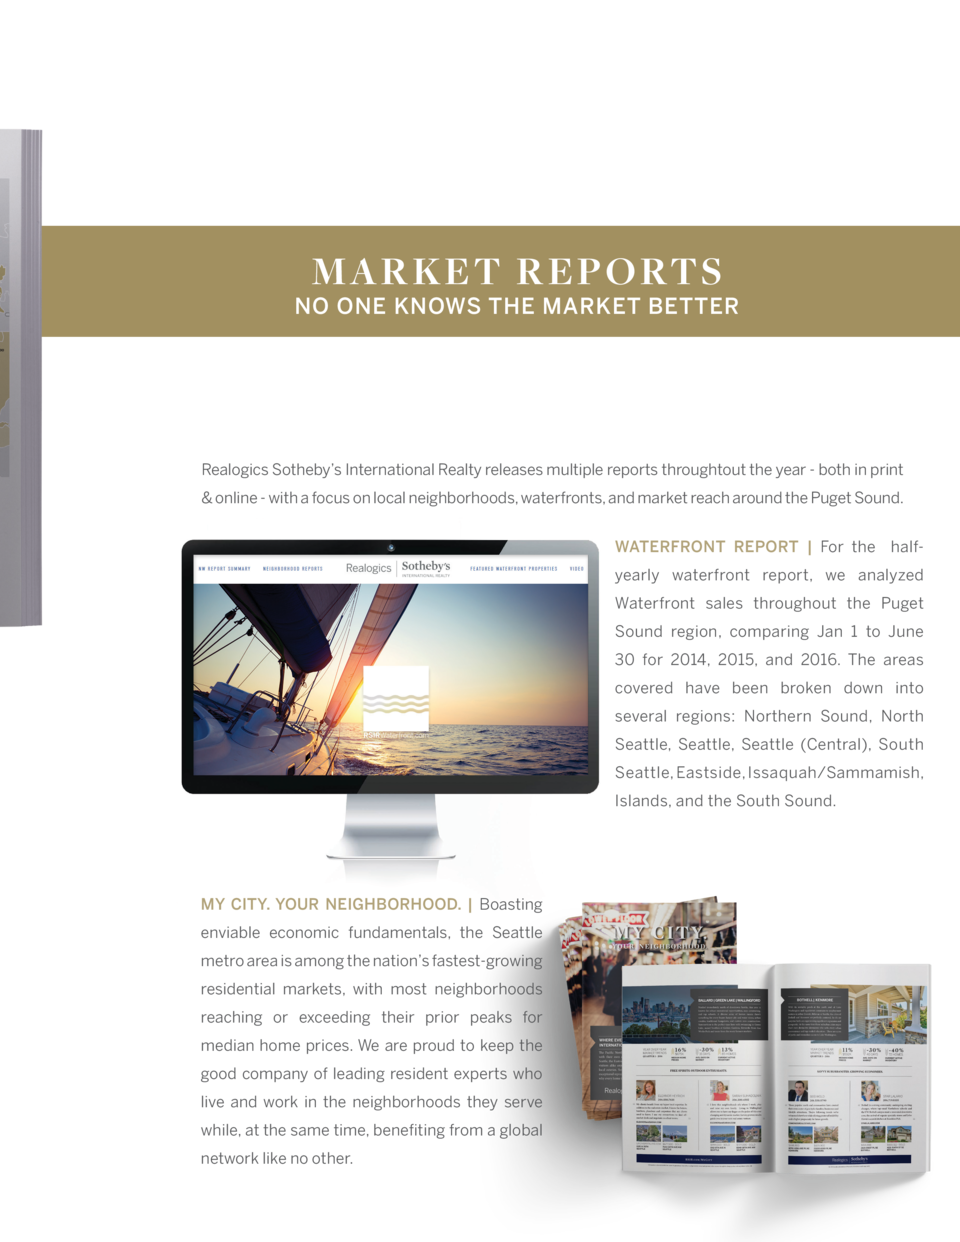 M AR KE T R E P ORTS  NO ONE KNOWS THE MARKET BETTER  Realogics Sotheby   s International Realty releases multiple reports...